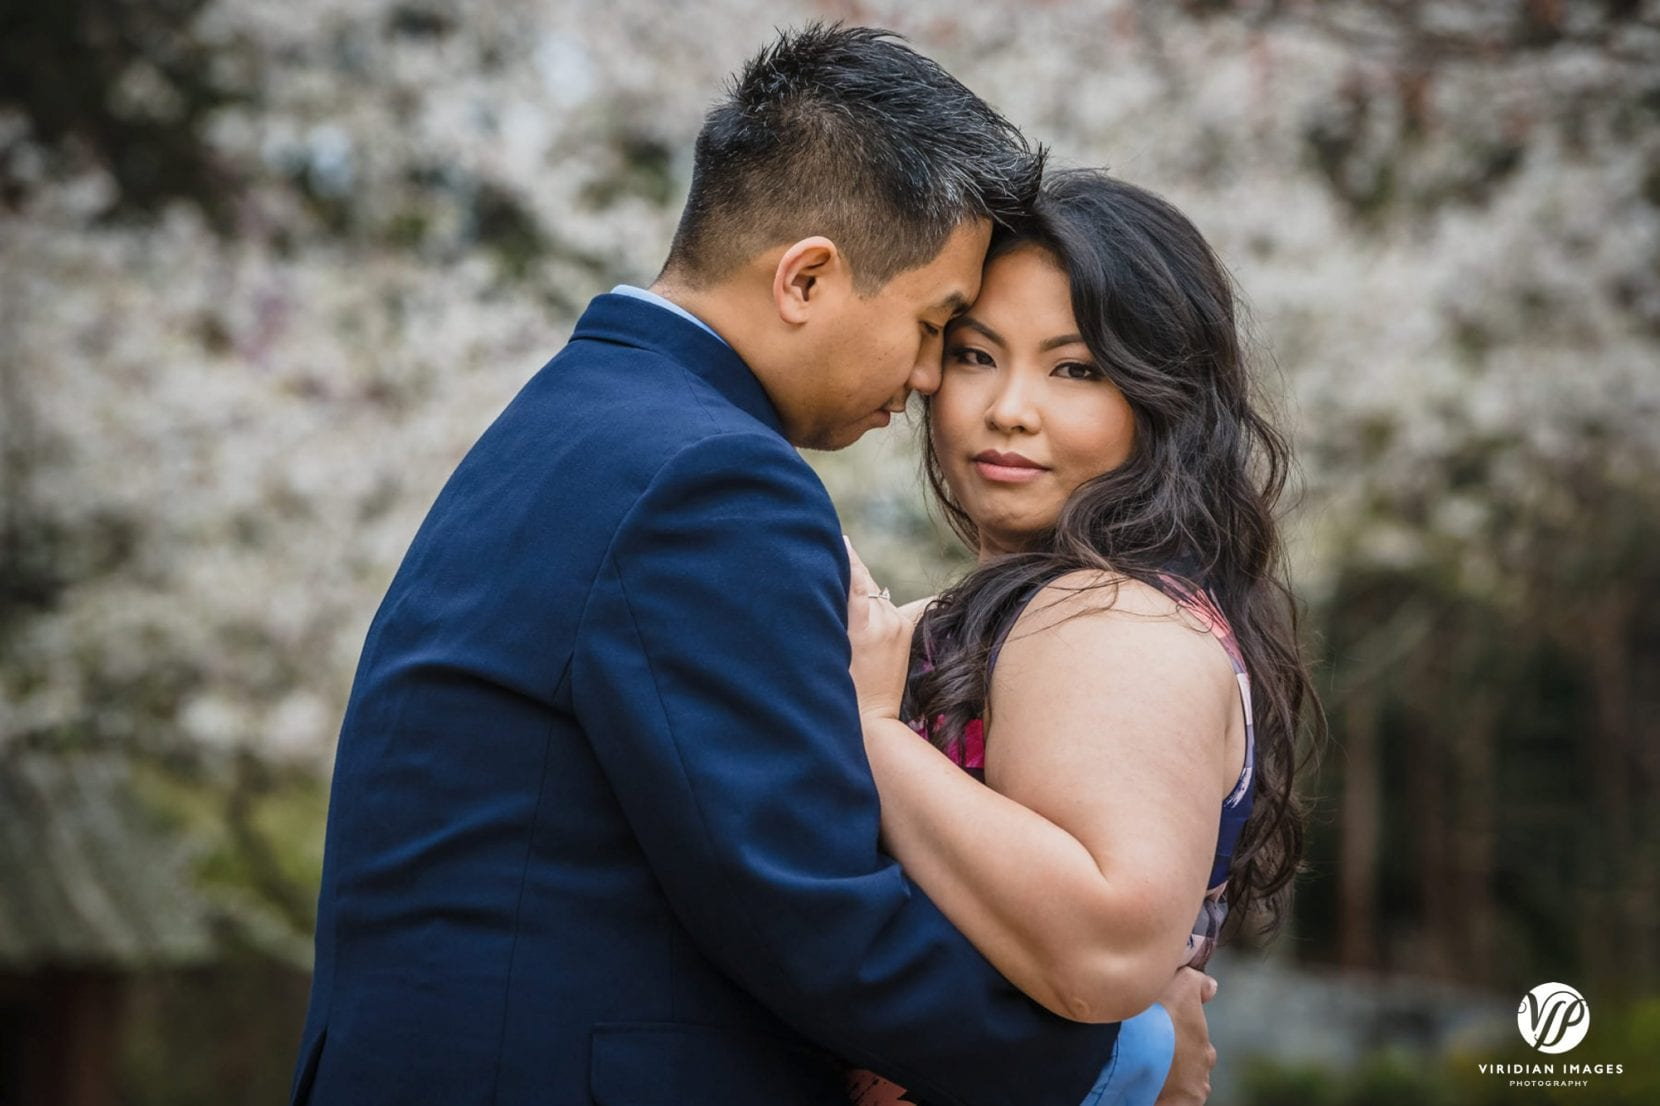 romantic, intimate, sultry couple photo engagement stone mountain park